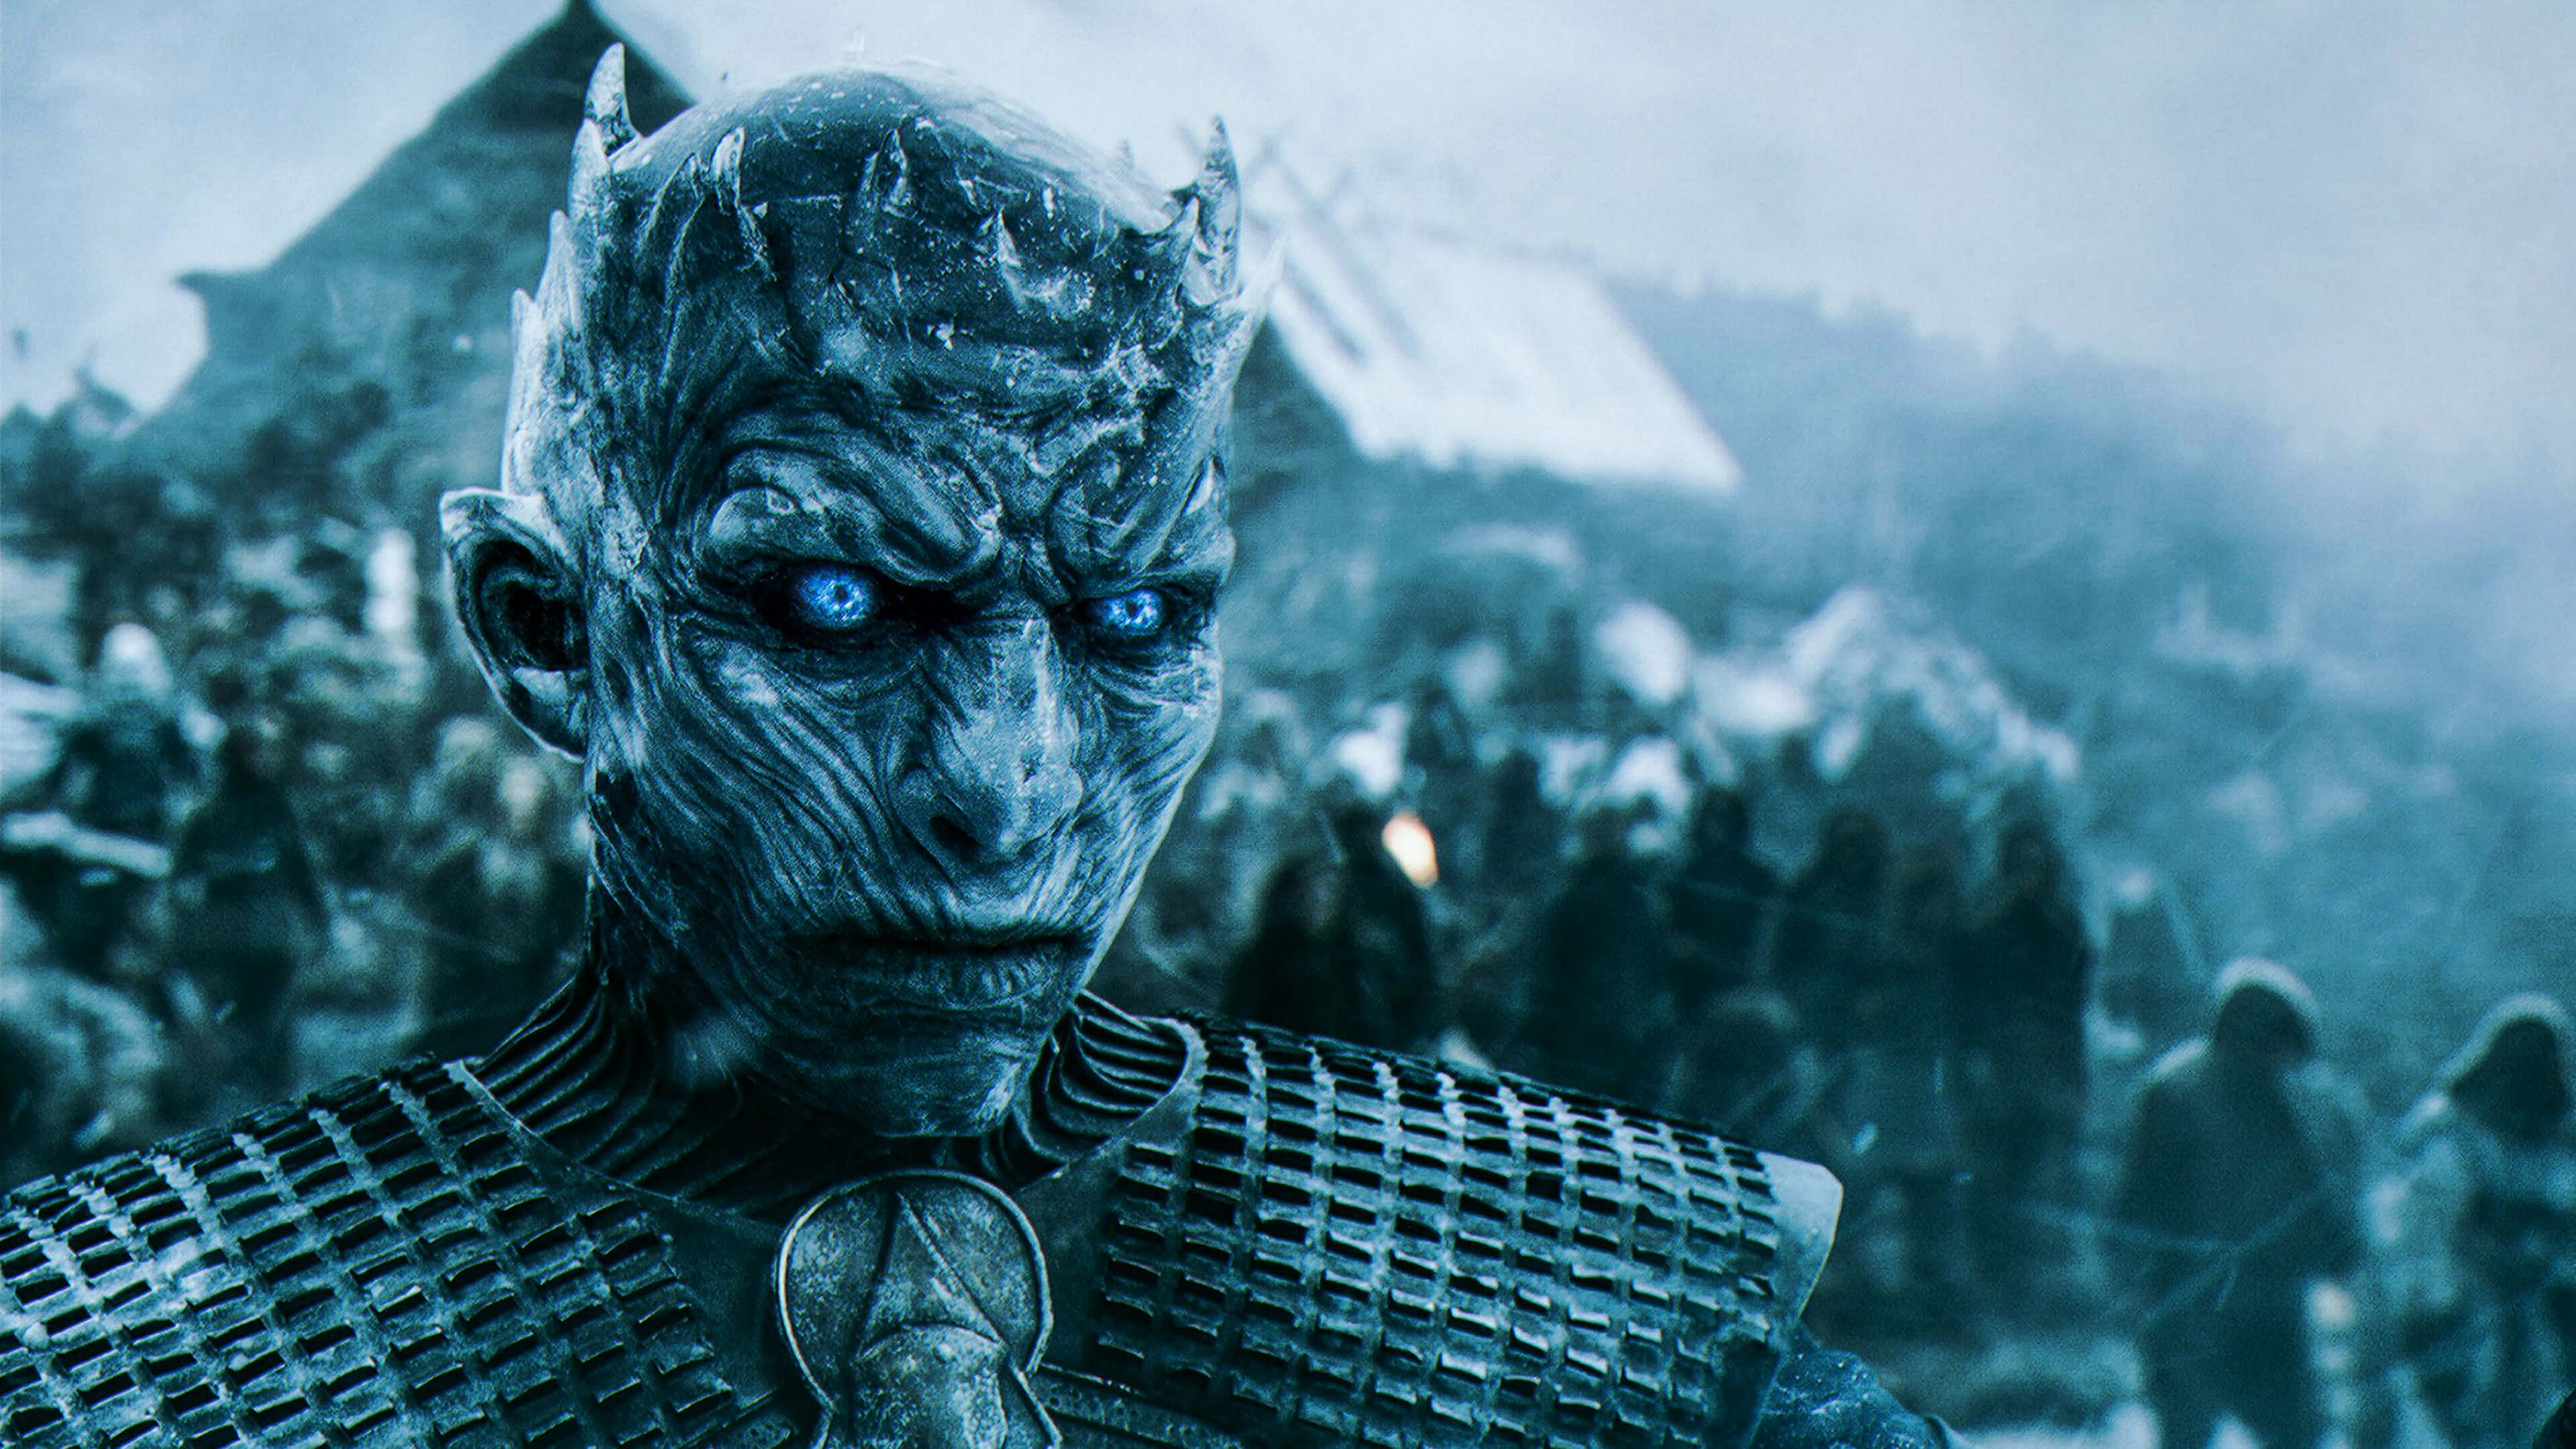 game of thrones wallpaper 2560x1440, wallpapers for free